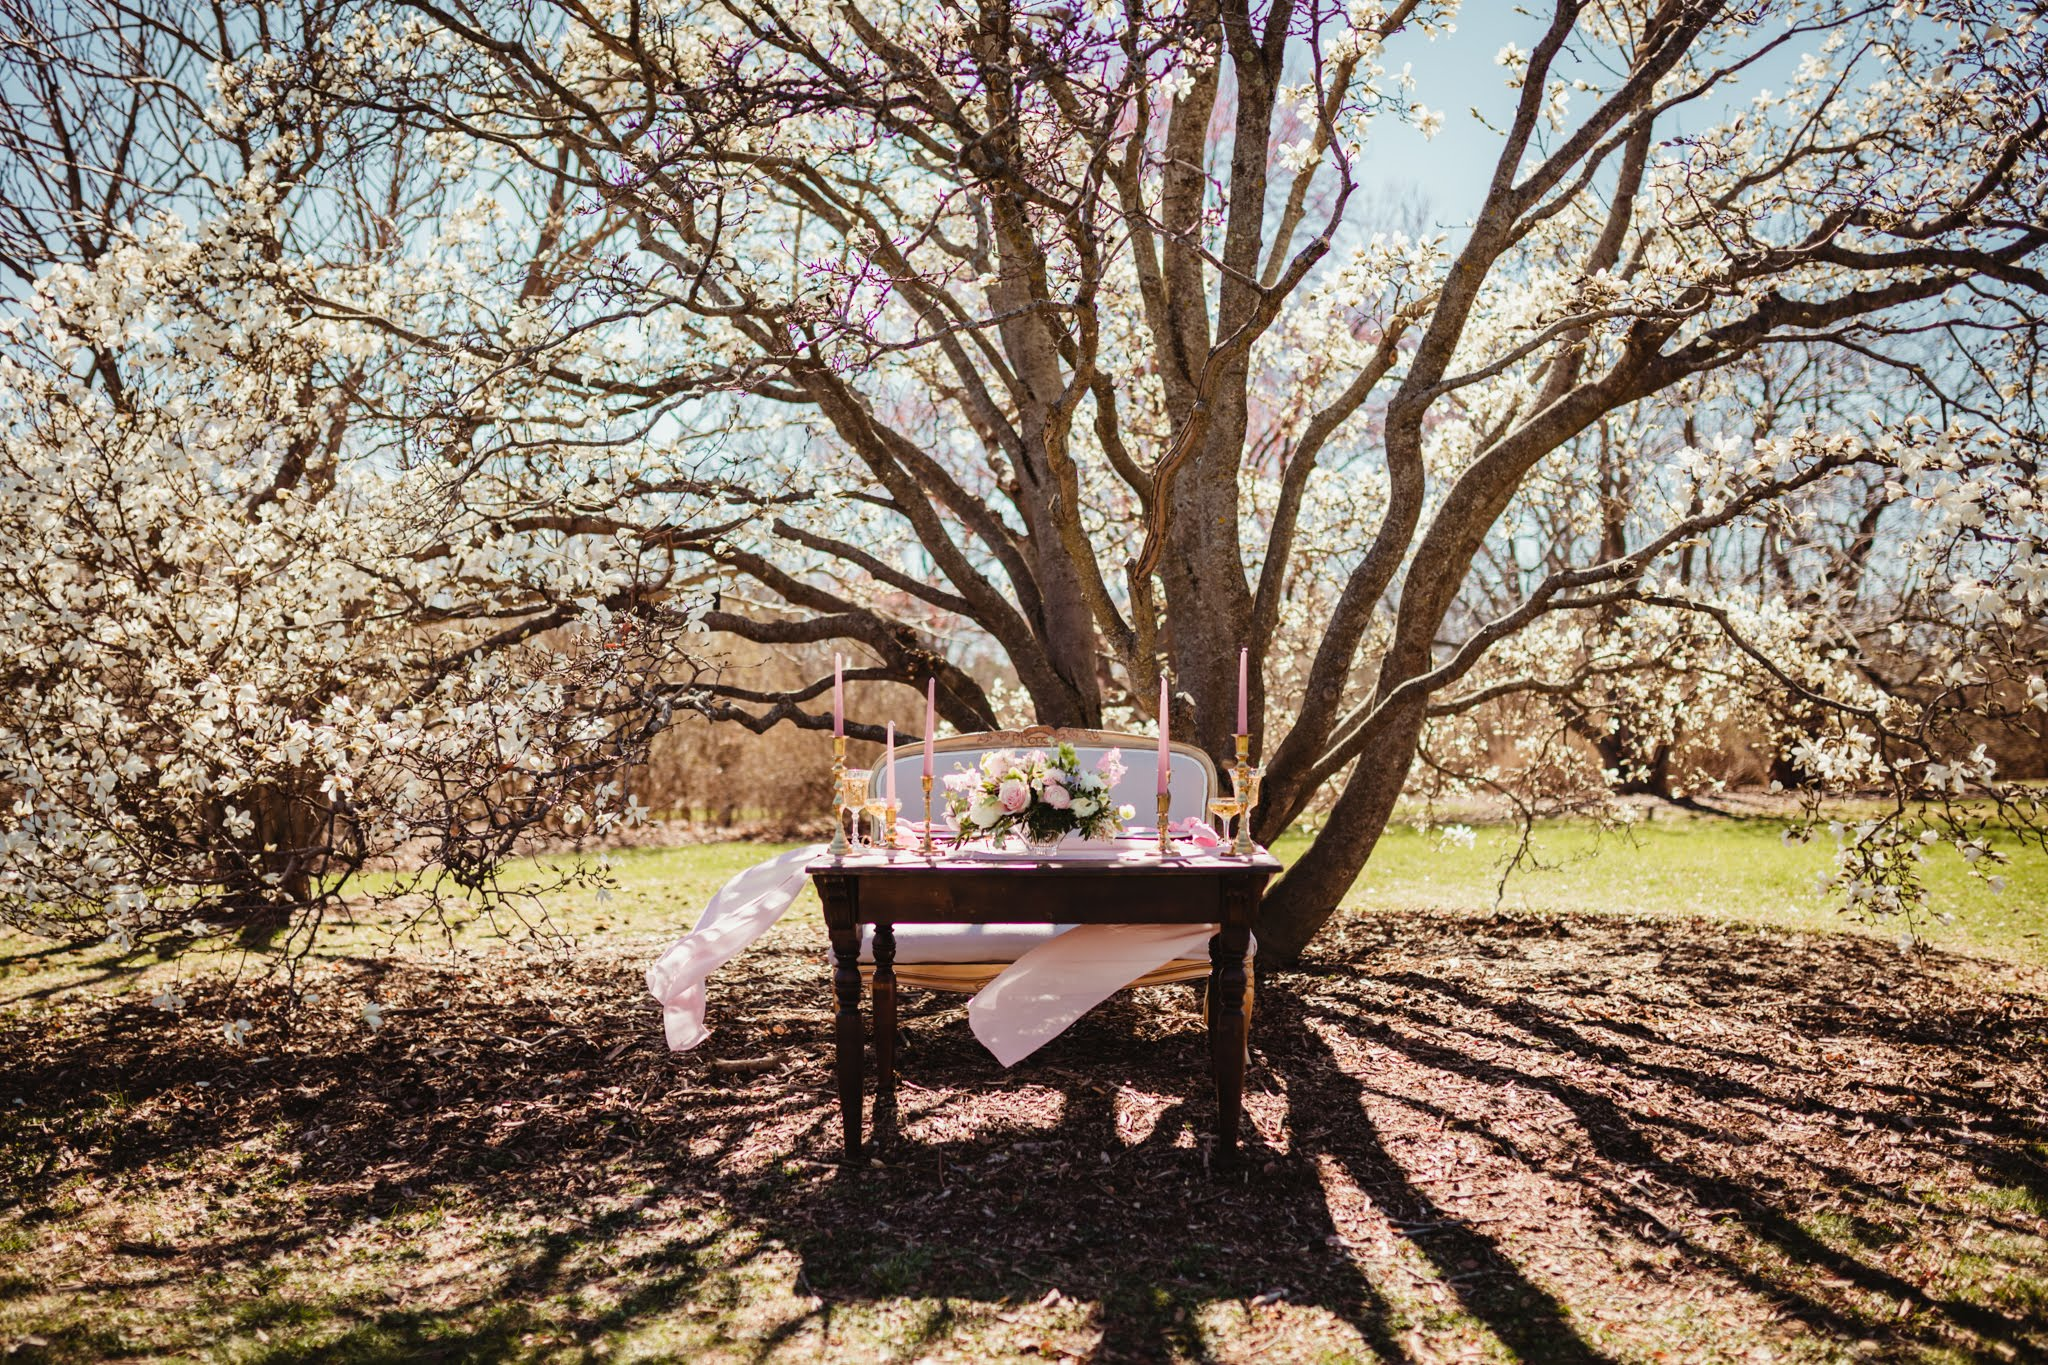 Blush and White Sweetheart Table Under a Magnolia Tree - Spring Wedding at the UW Madison Arboretum in Madison Wisconsin - Phoenix & Rose Photography